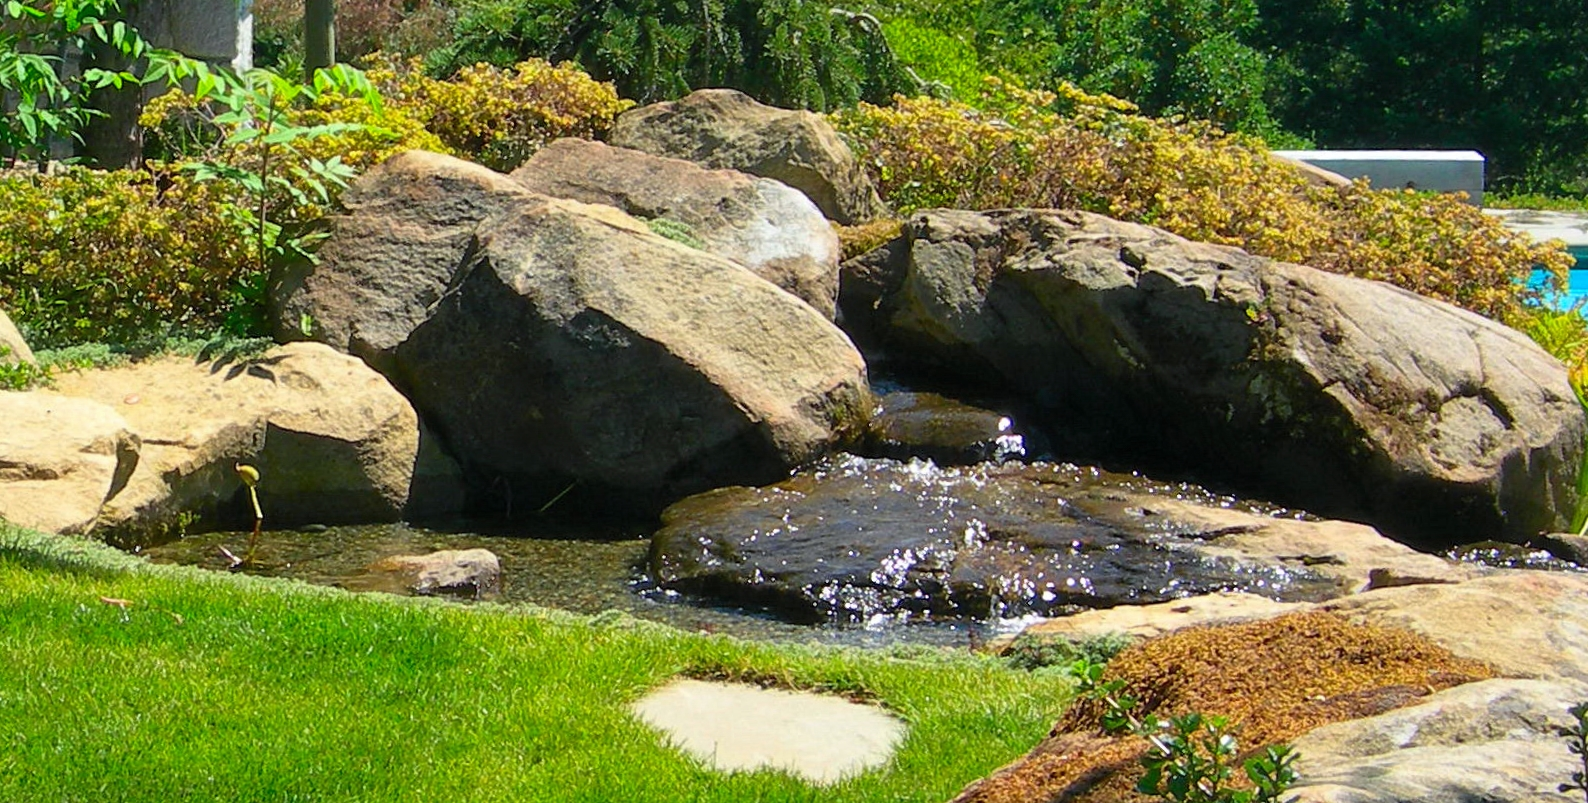 STREAM AND BEAUTIFUL ROCK PLACEMENT